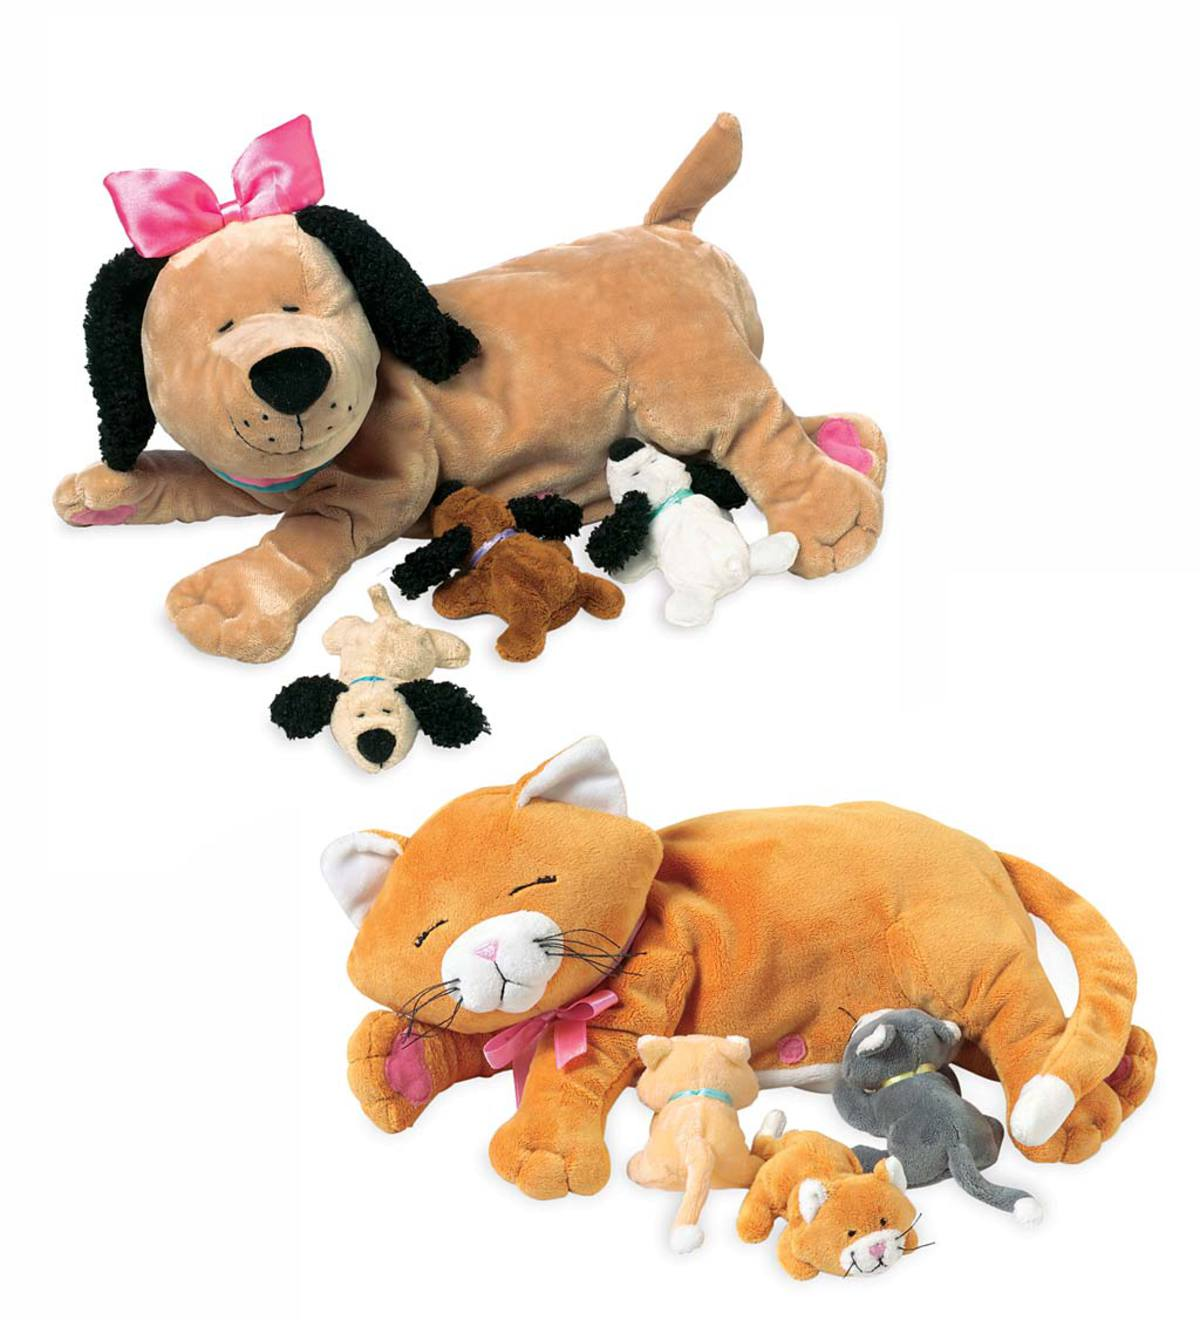 Plush Nursing Animal Toys